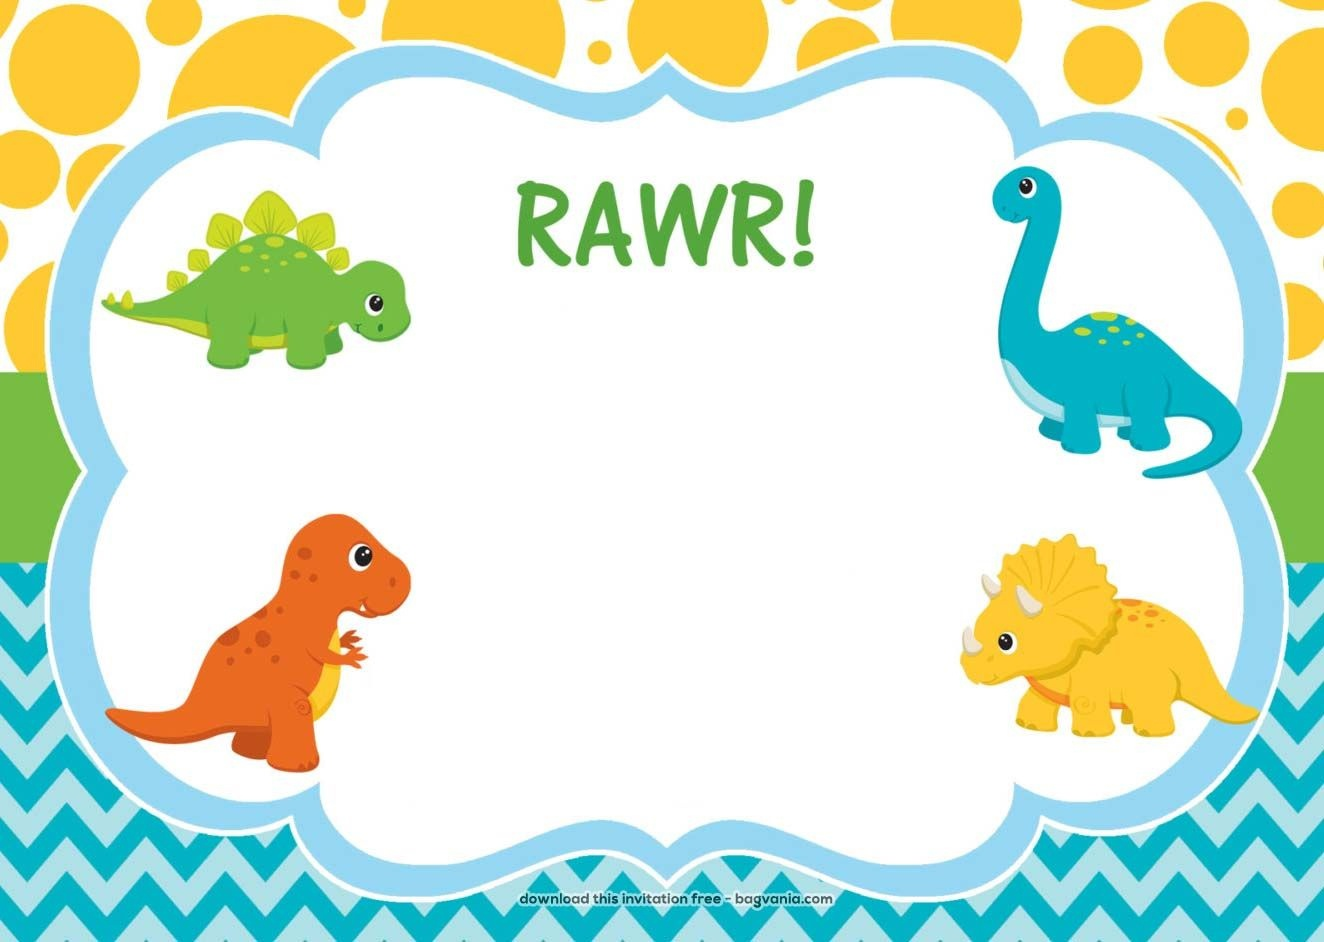 Download Free Dinosaur Birthday Invitations | Bagvania Invitation In - Free Printable Dinosaur Birthday Invitations